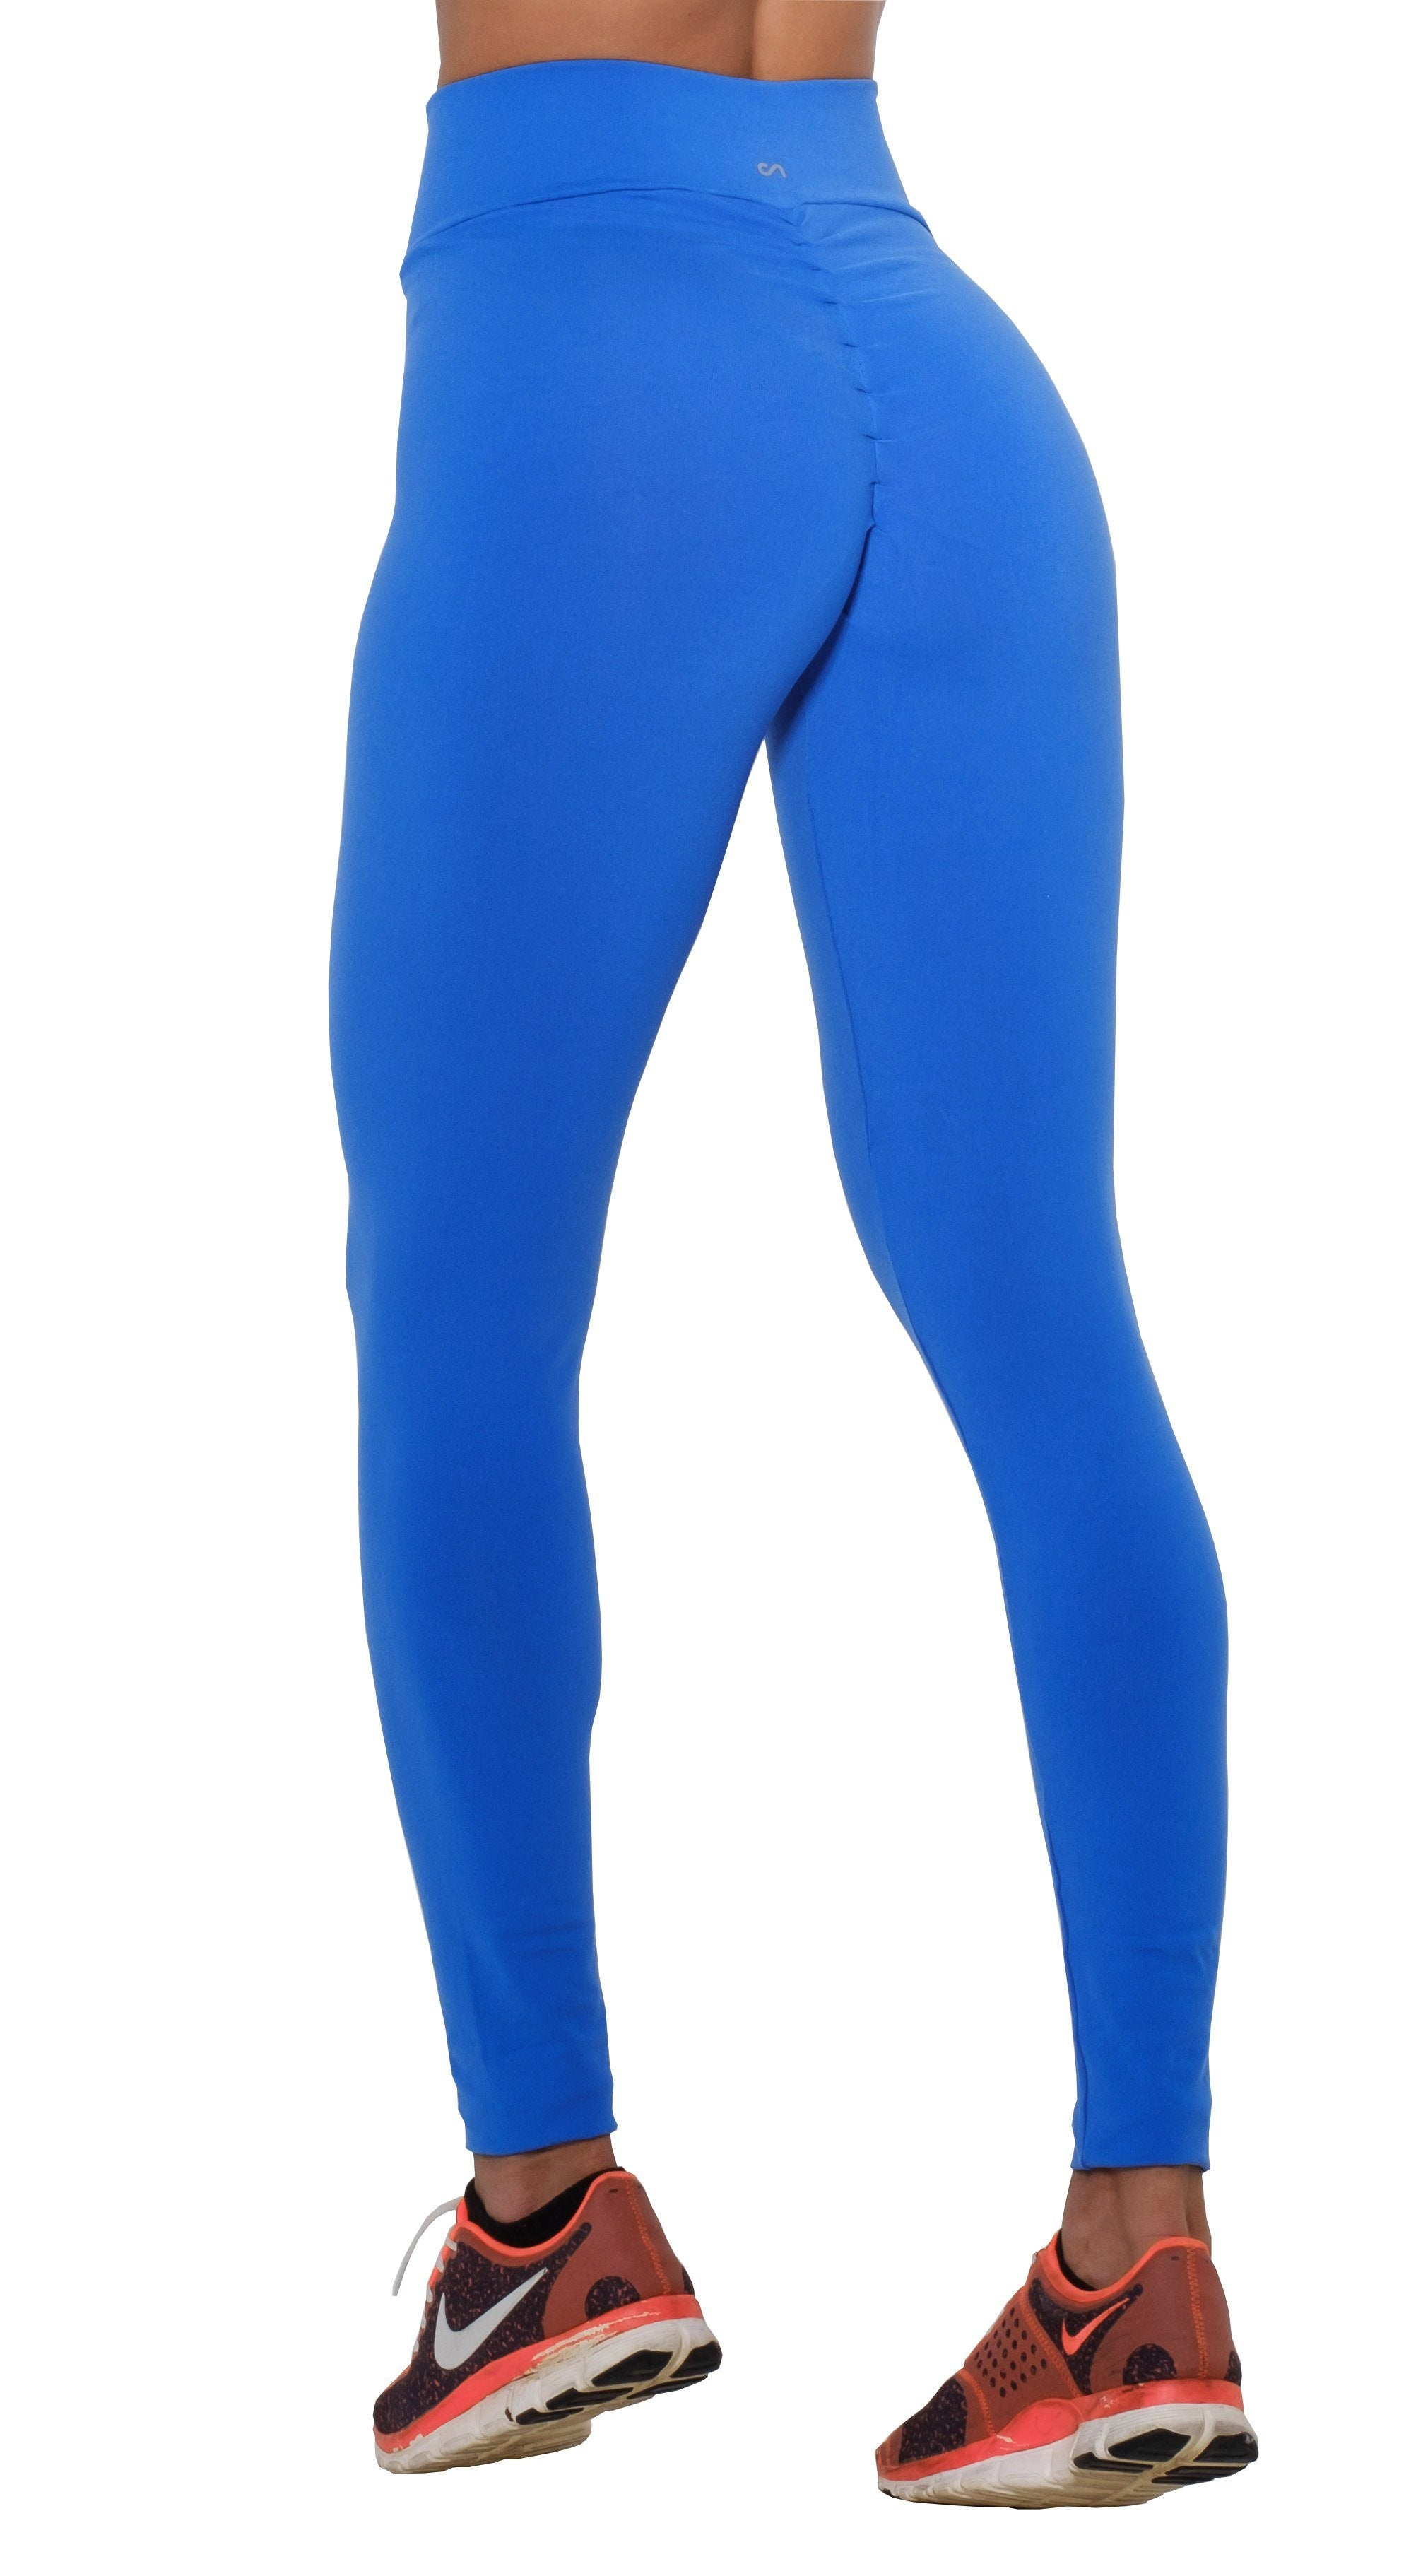 Brazilian Workout Legging - Scrunch Booty Lift! Royal Blue